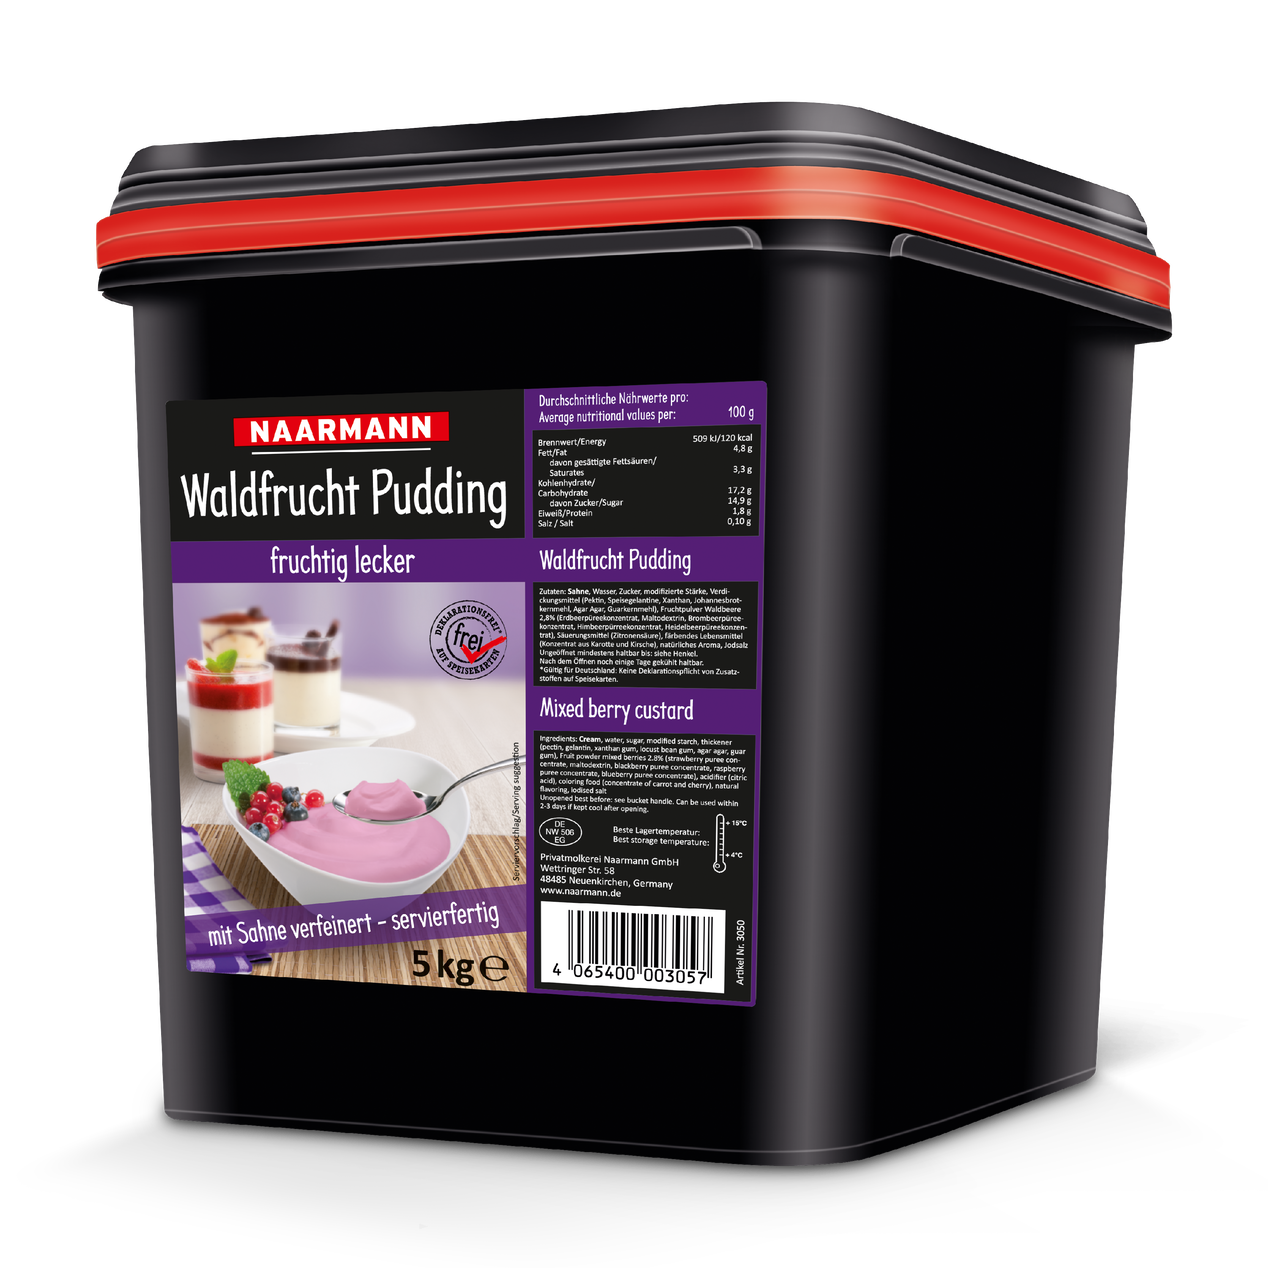 Waldfrucht Pudding